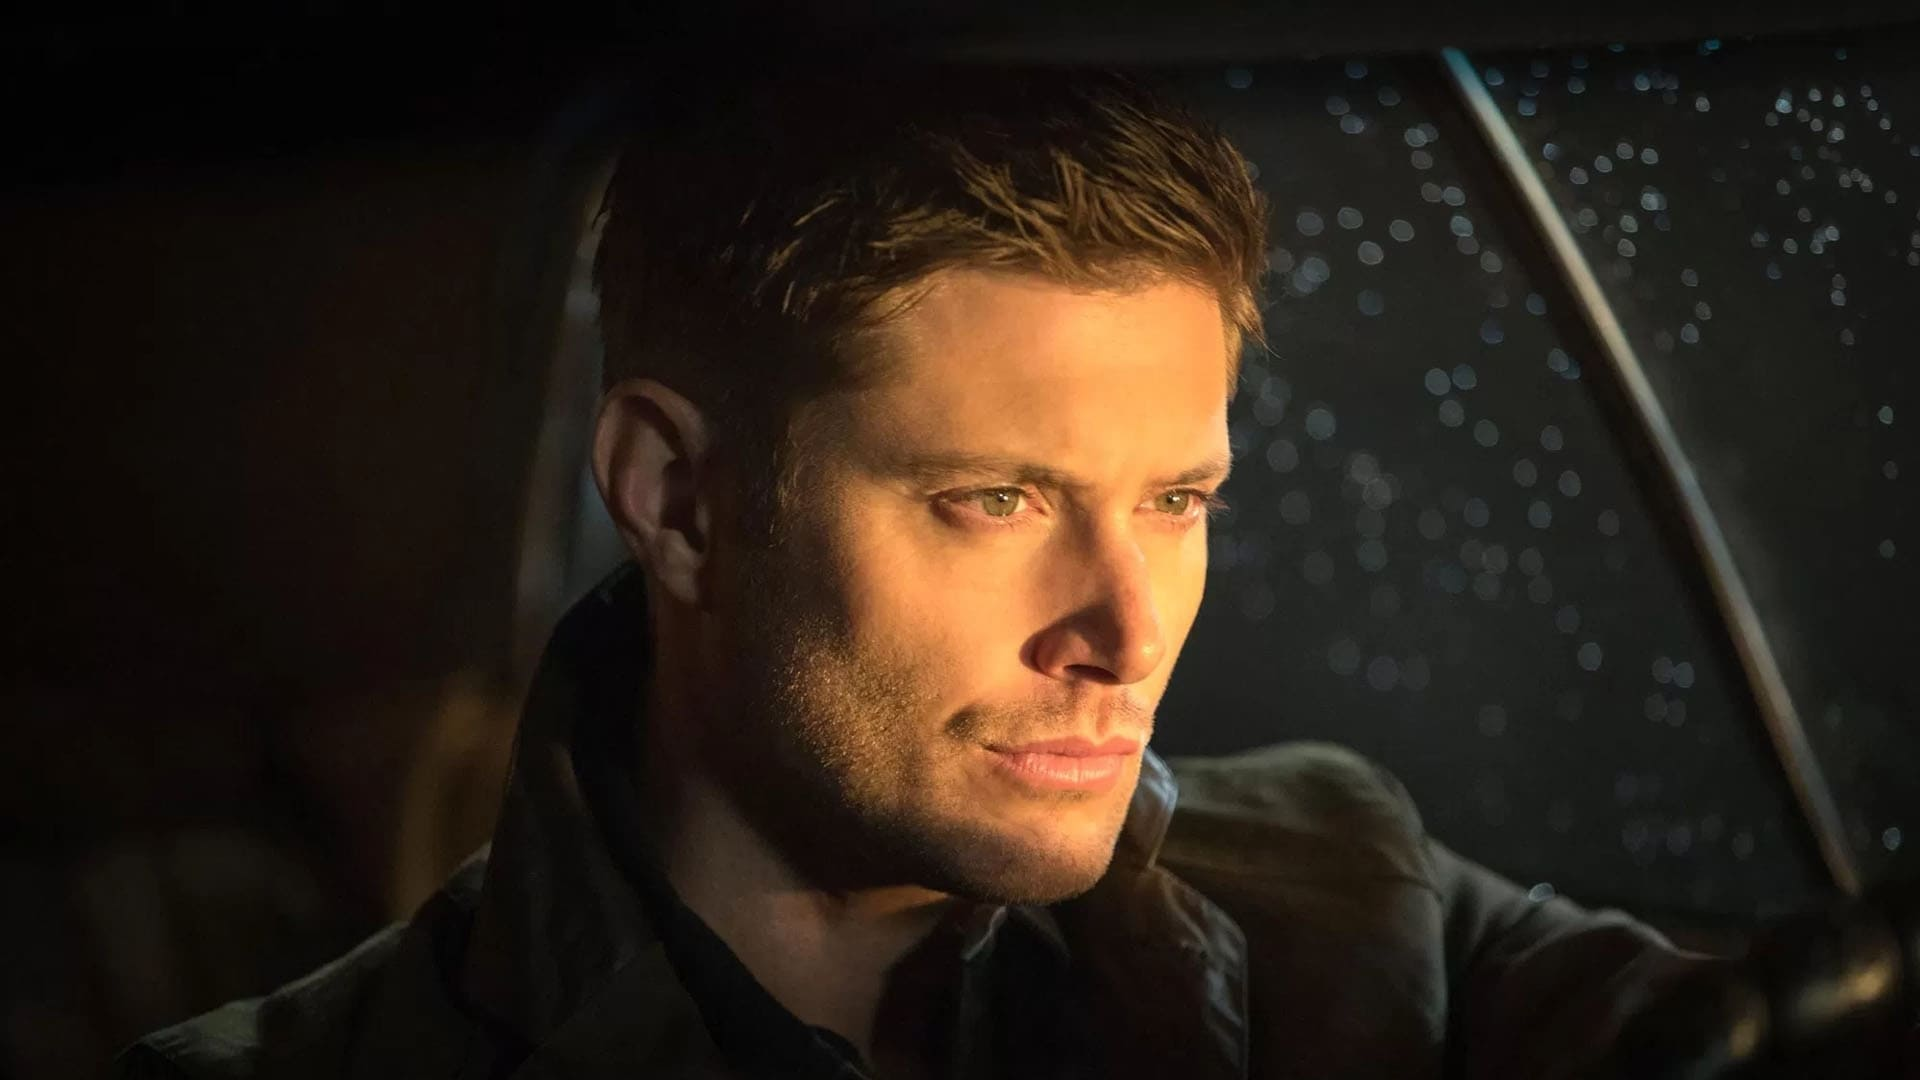 Supernatural Season 12 :Episode 12  12 Uhr Mittags